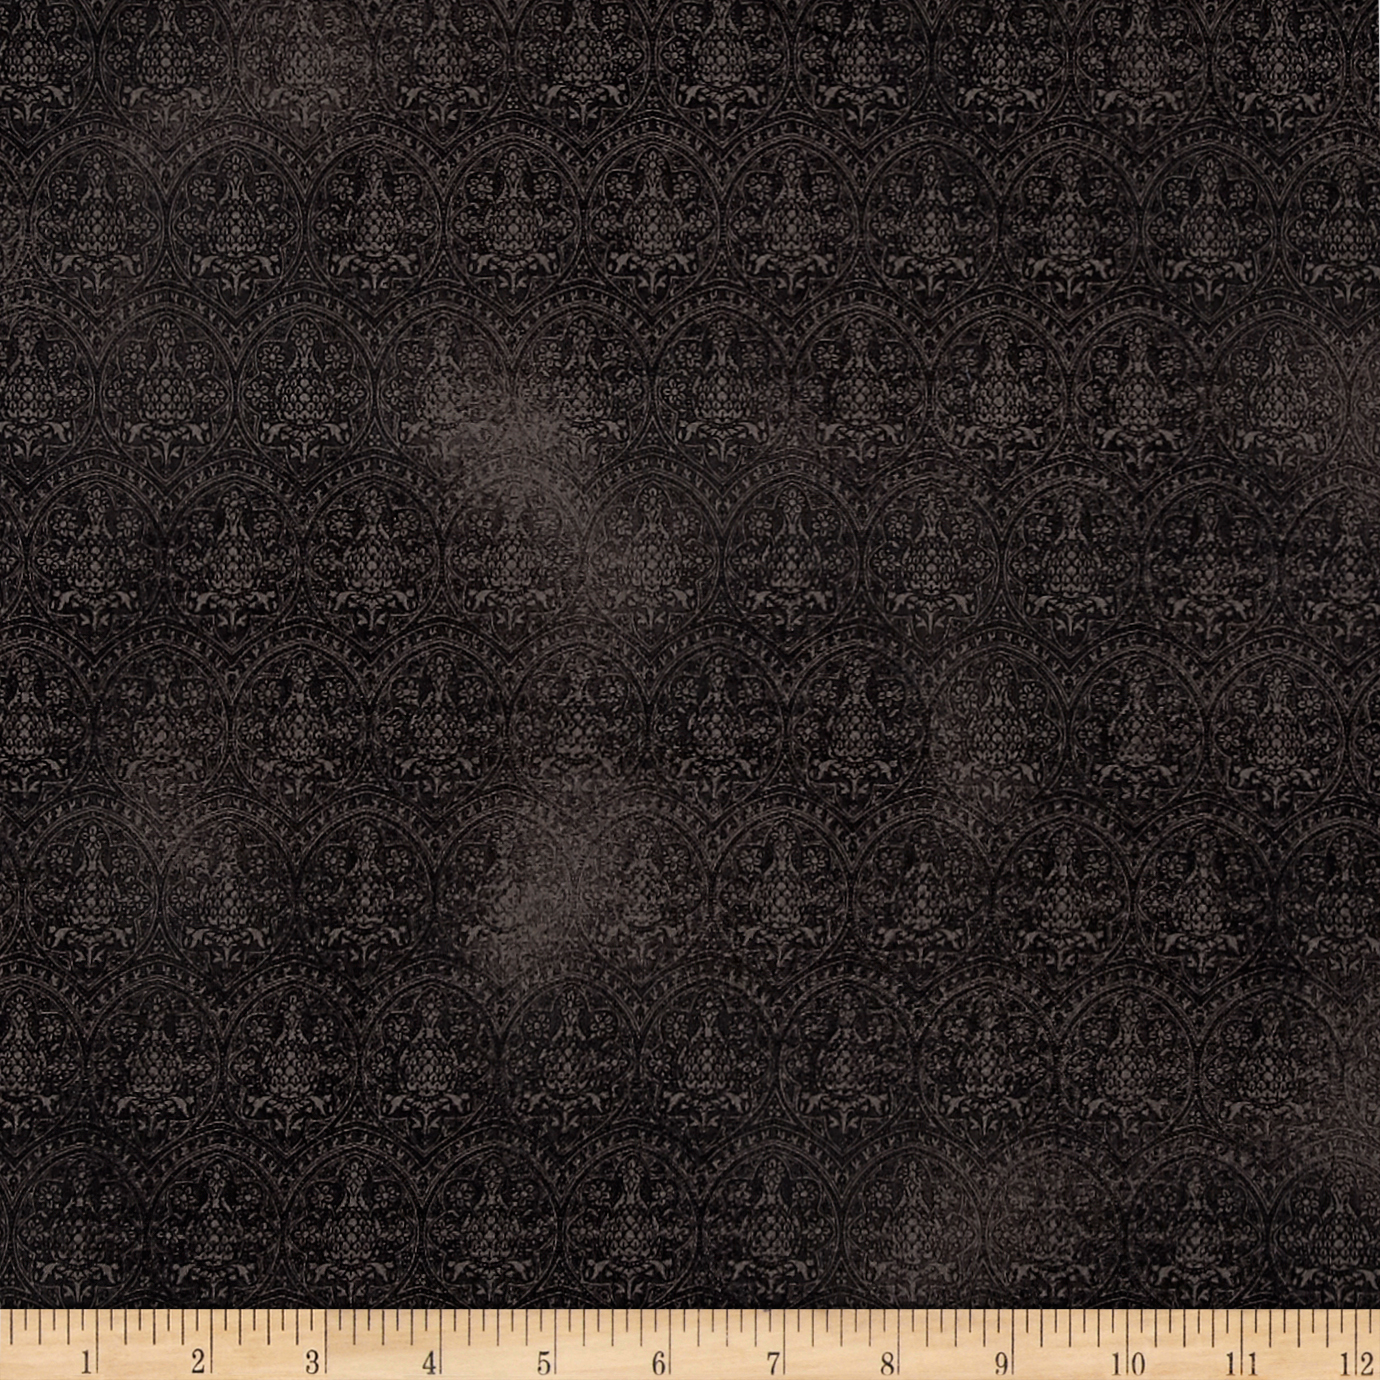 Letters From The Heart Lace Damask Black Fabric by Quilting Treasures in USA